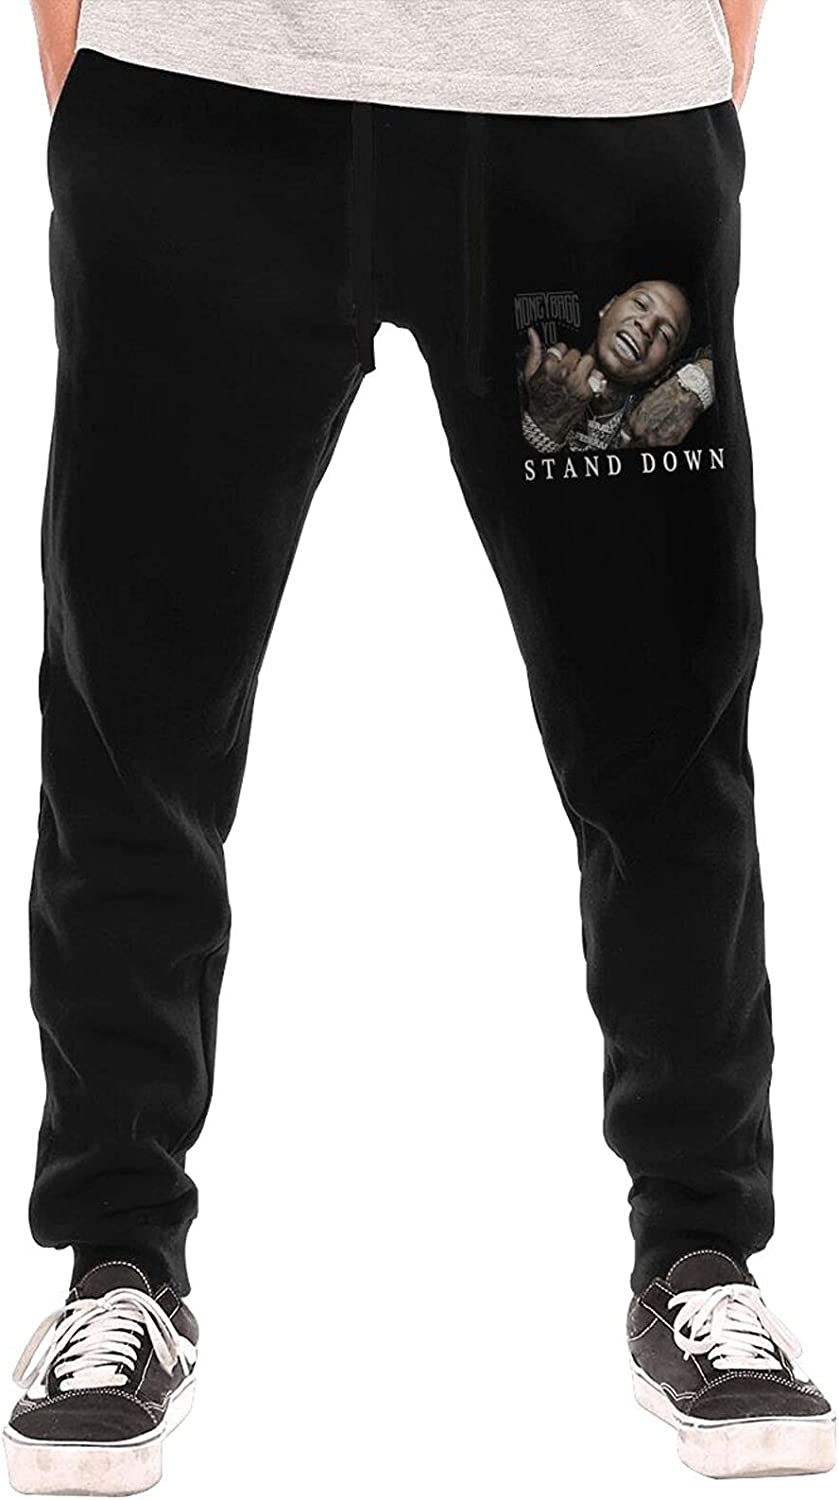 RandyDPeter Moneybagg Yo Boys Sweatpants Long Trousers Max 53% OFF New color Pa Casual